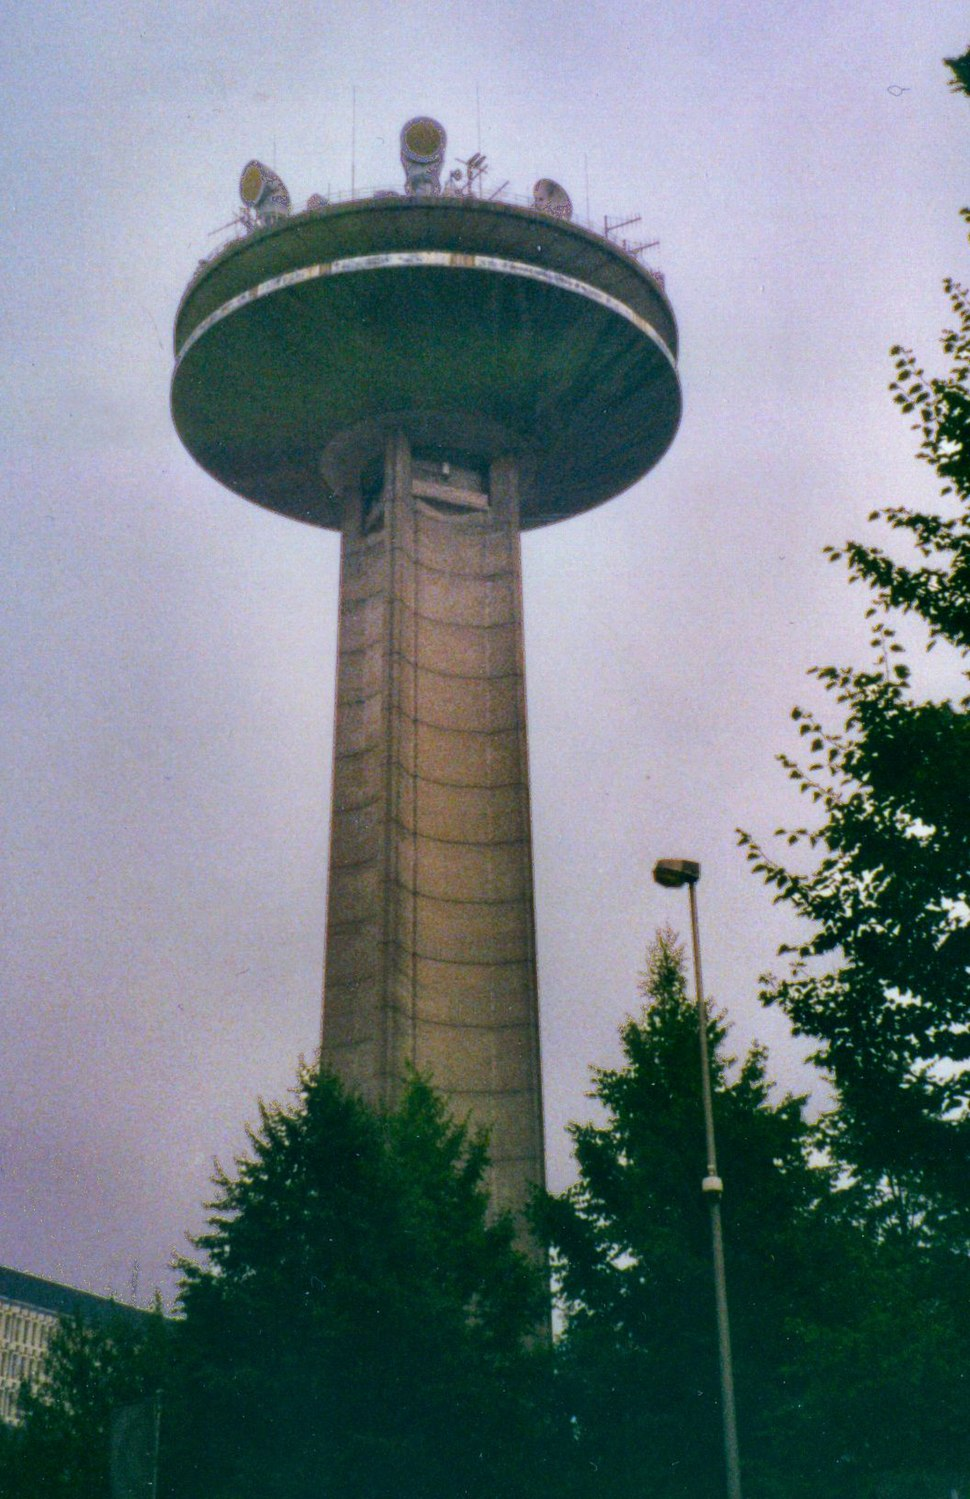 Communications tower in Brussels Redvers